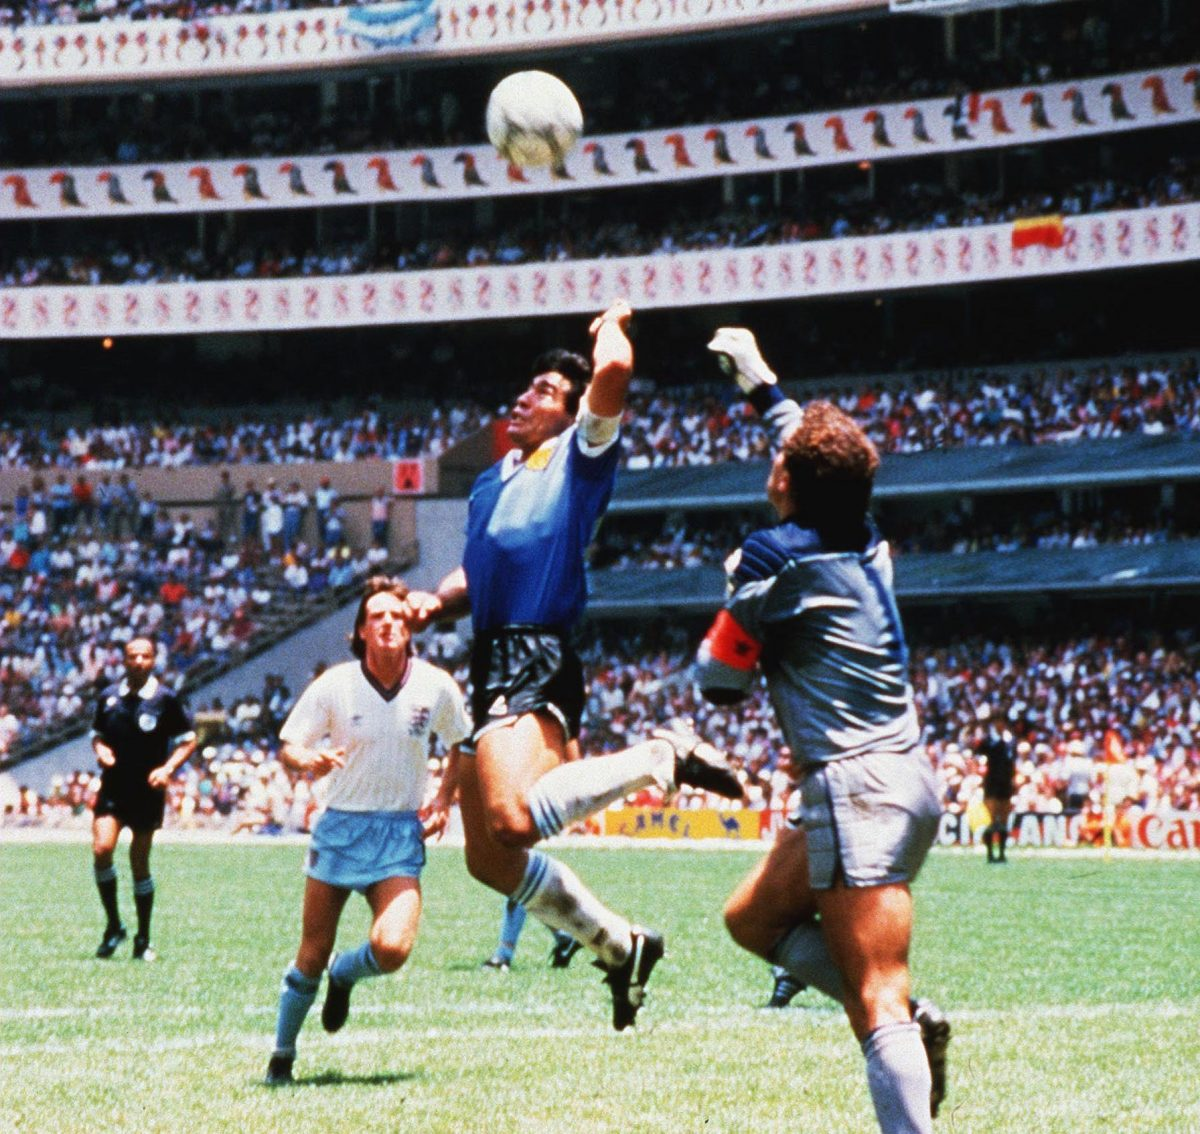 1986 World Cup - Quarter Final - Argentina v England - Mexico City - 22 Jun 1986. Diego Maradona scoring the 'Hand of God' goal 22 Jun 1986